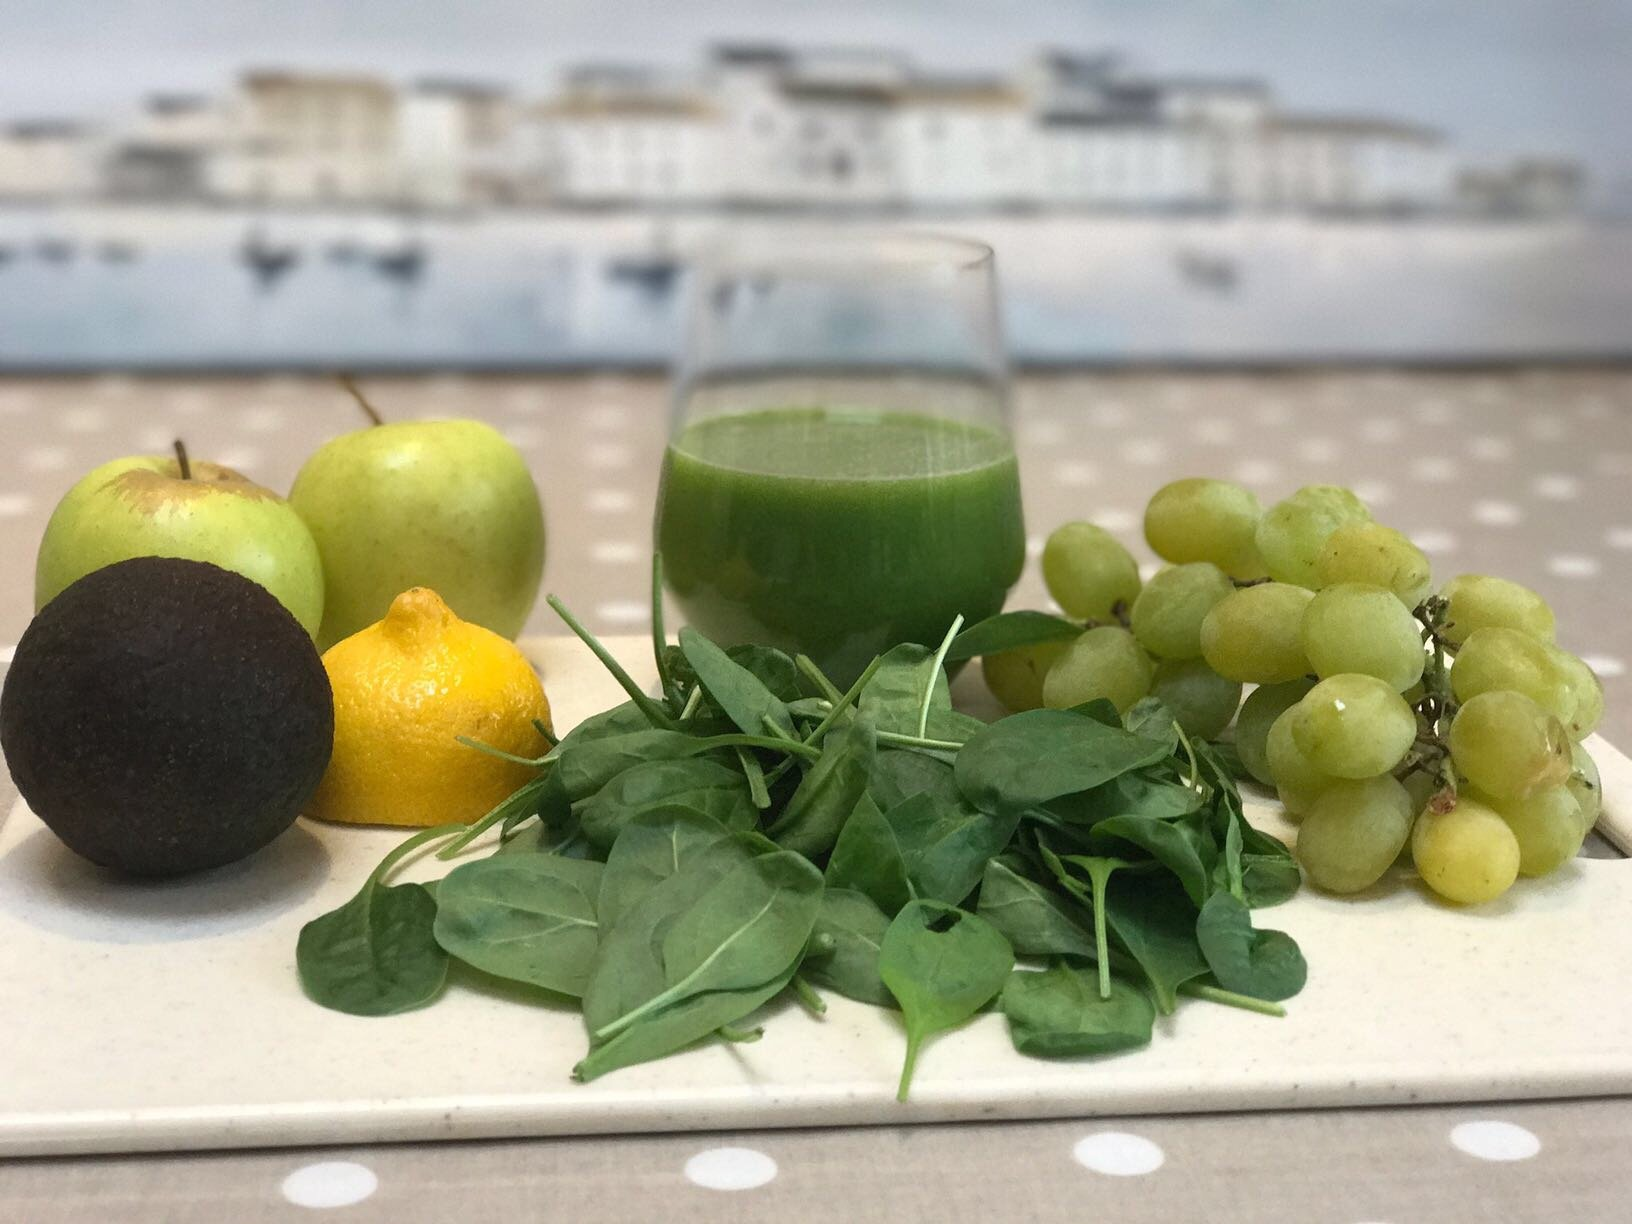 Juicing- Do You Really Need A Juicer?